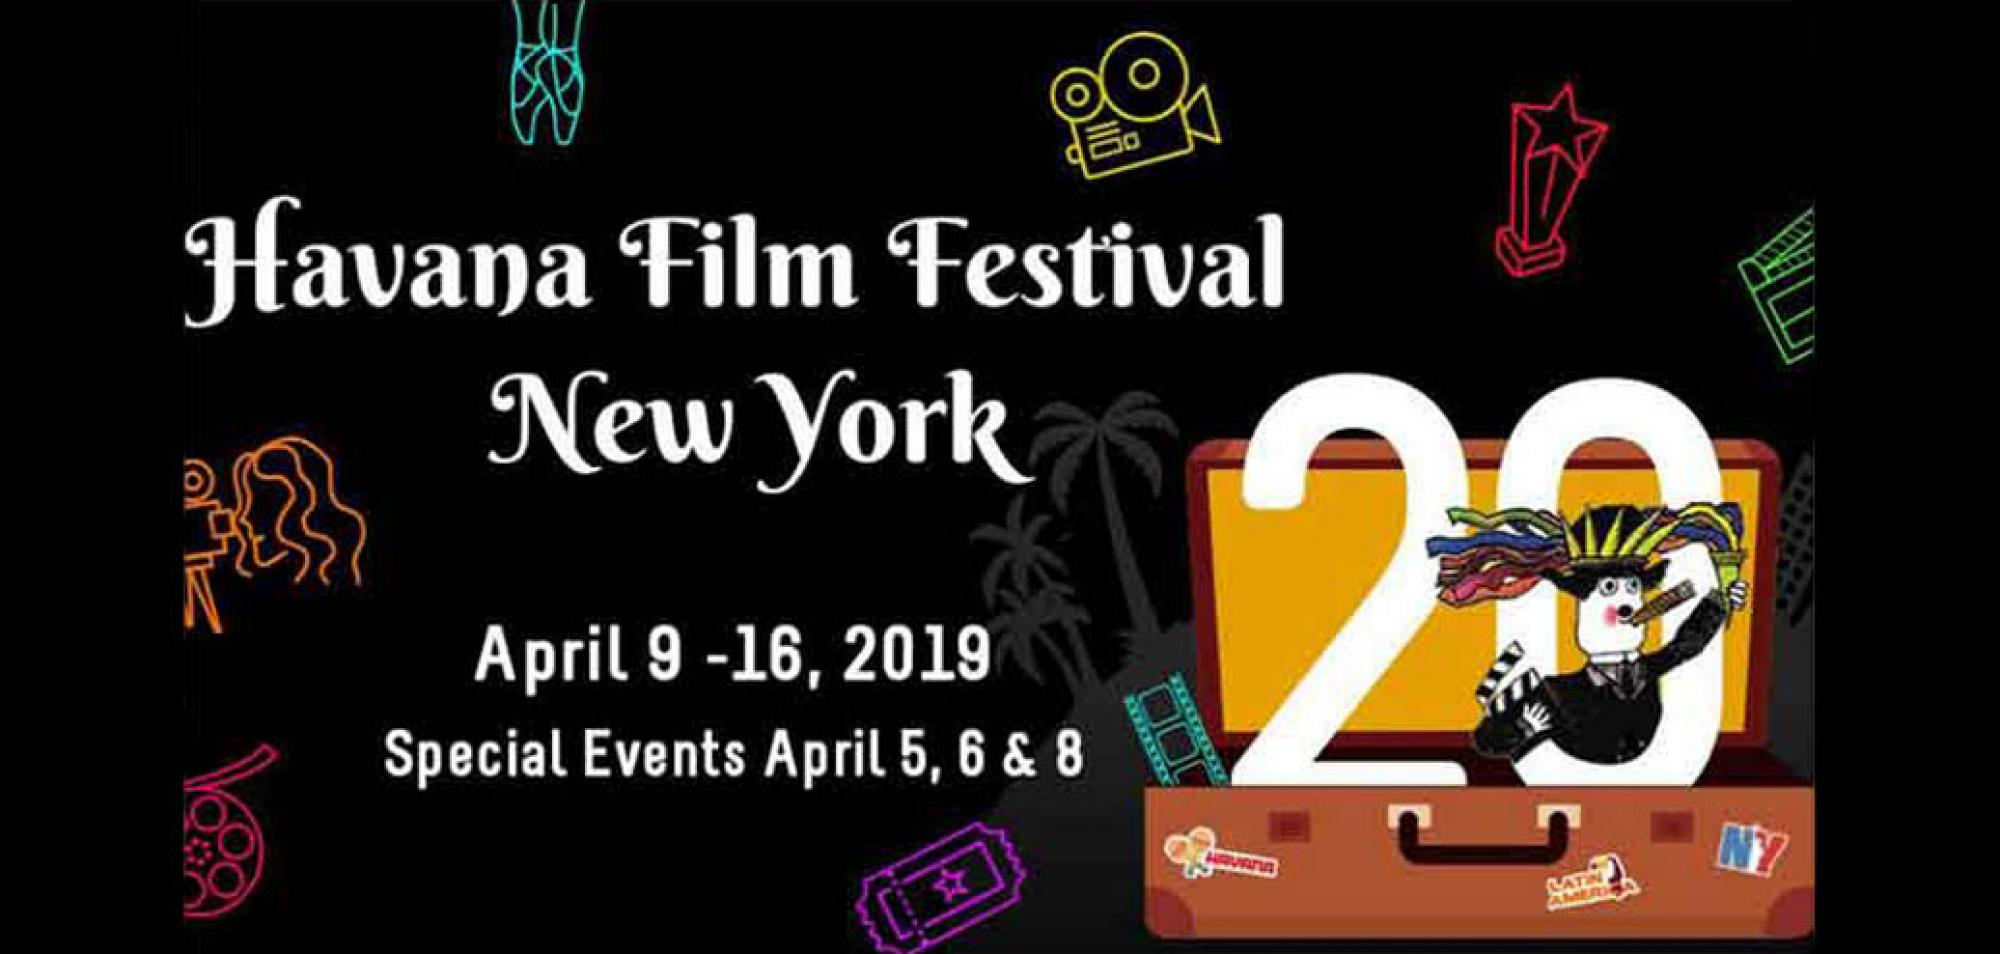 Four Cuban Fiction Movies Competing at Film Festival in New York City